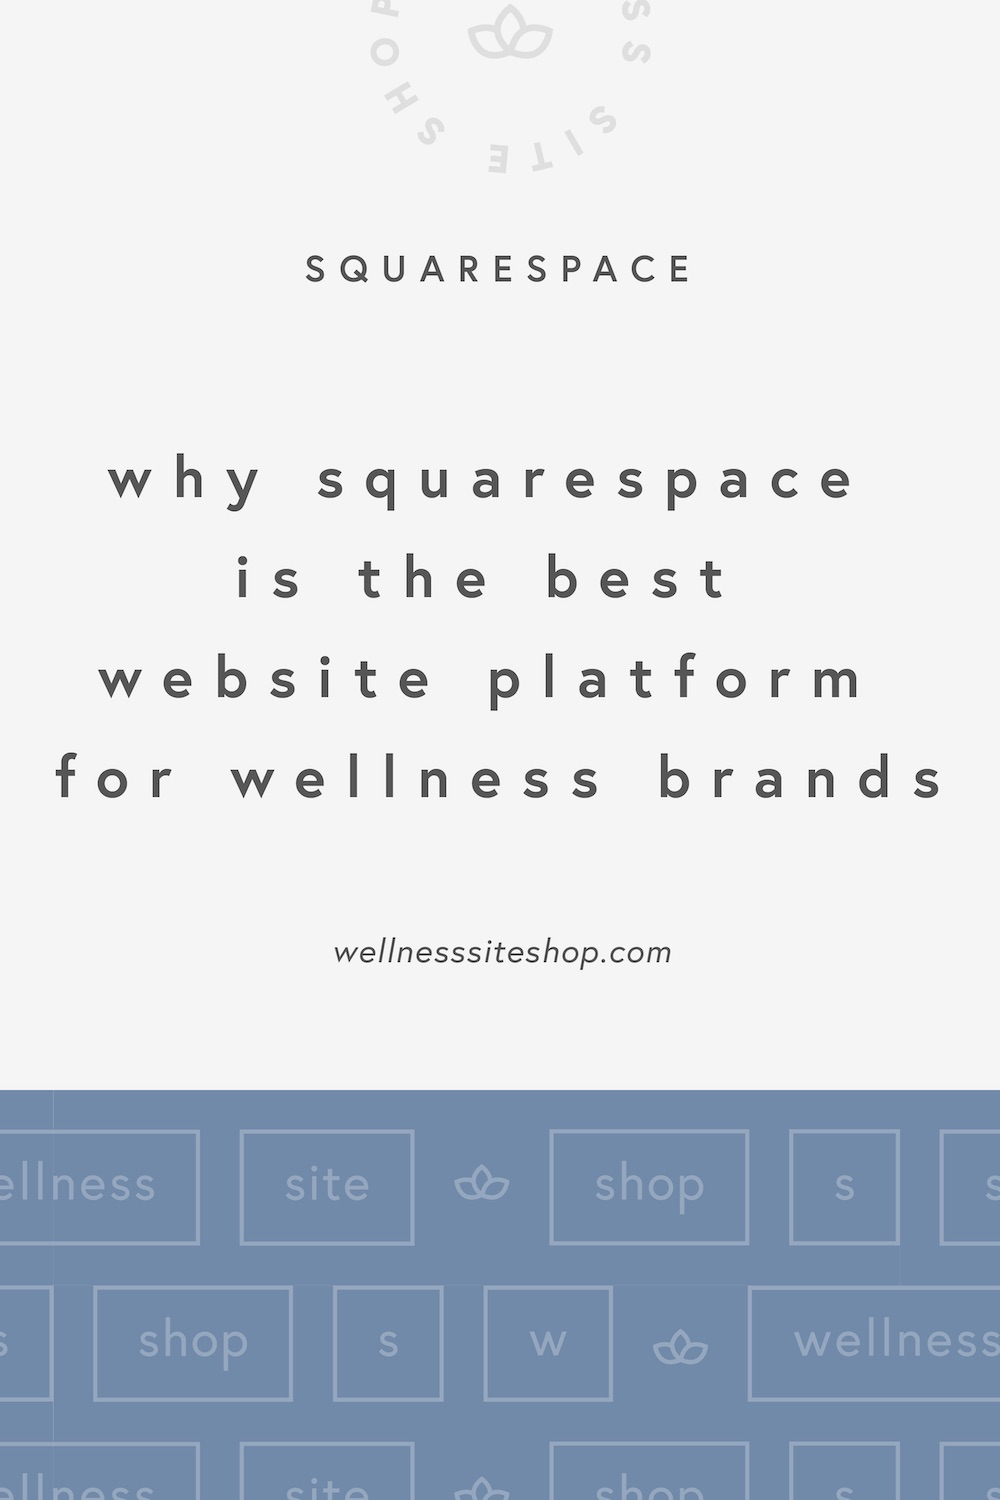 why squarespace is the best website platform for wellness brands.jpg